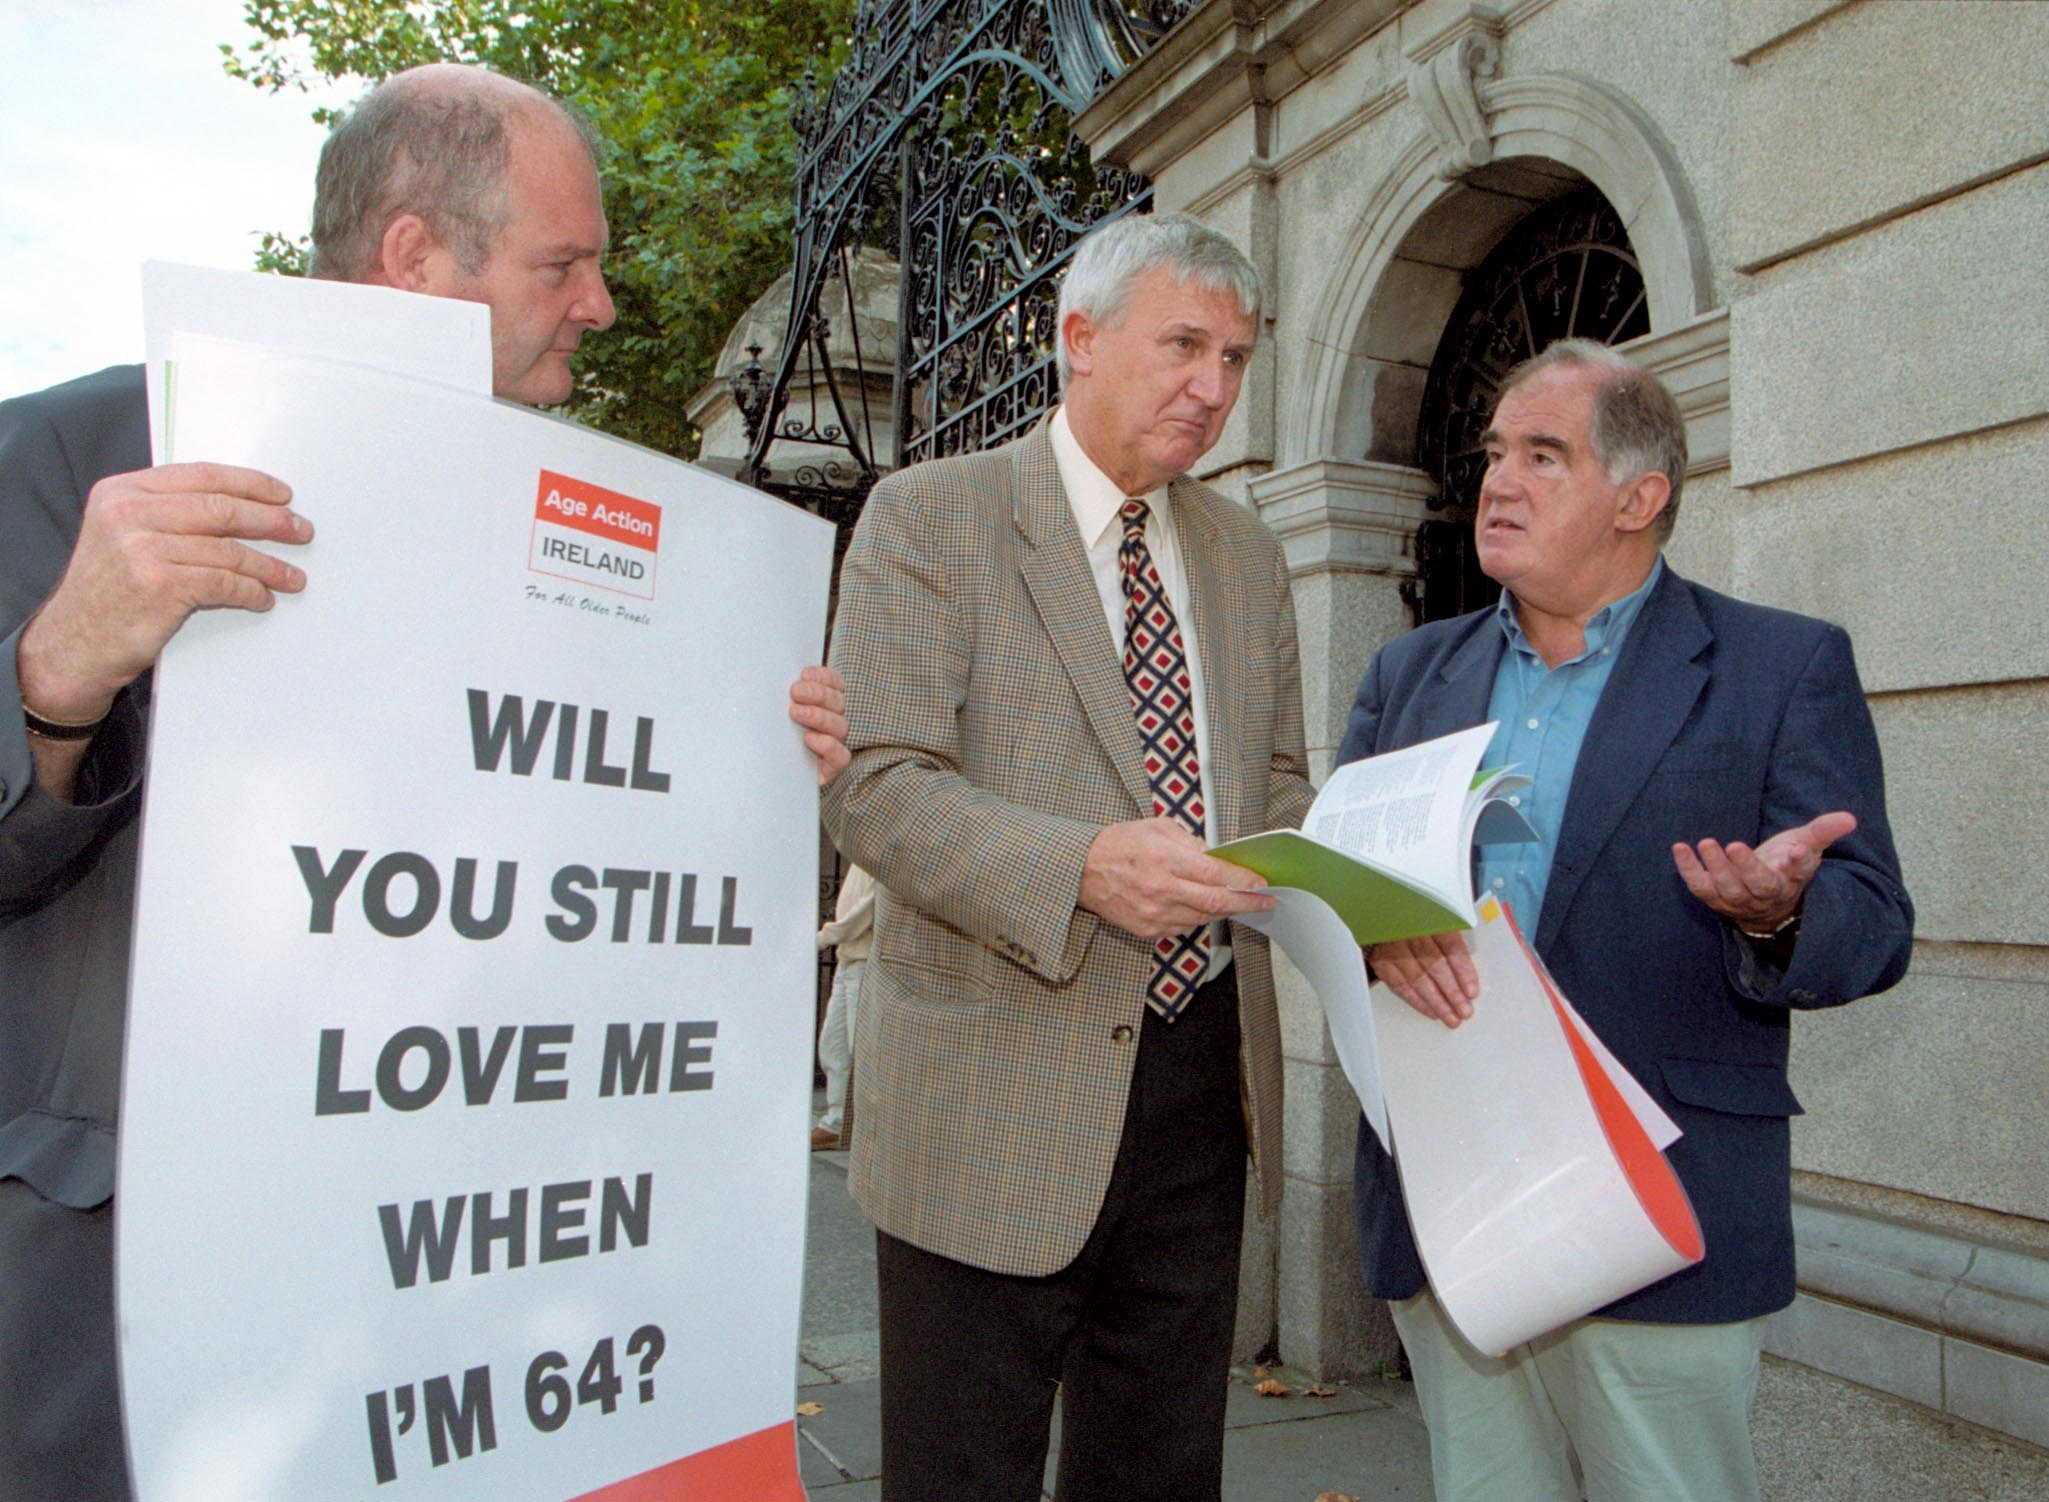 Age Action members campaigning on pension reform